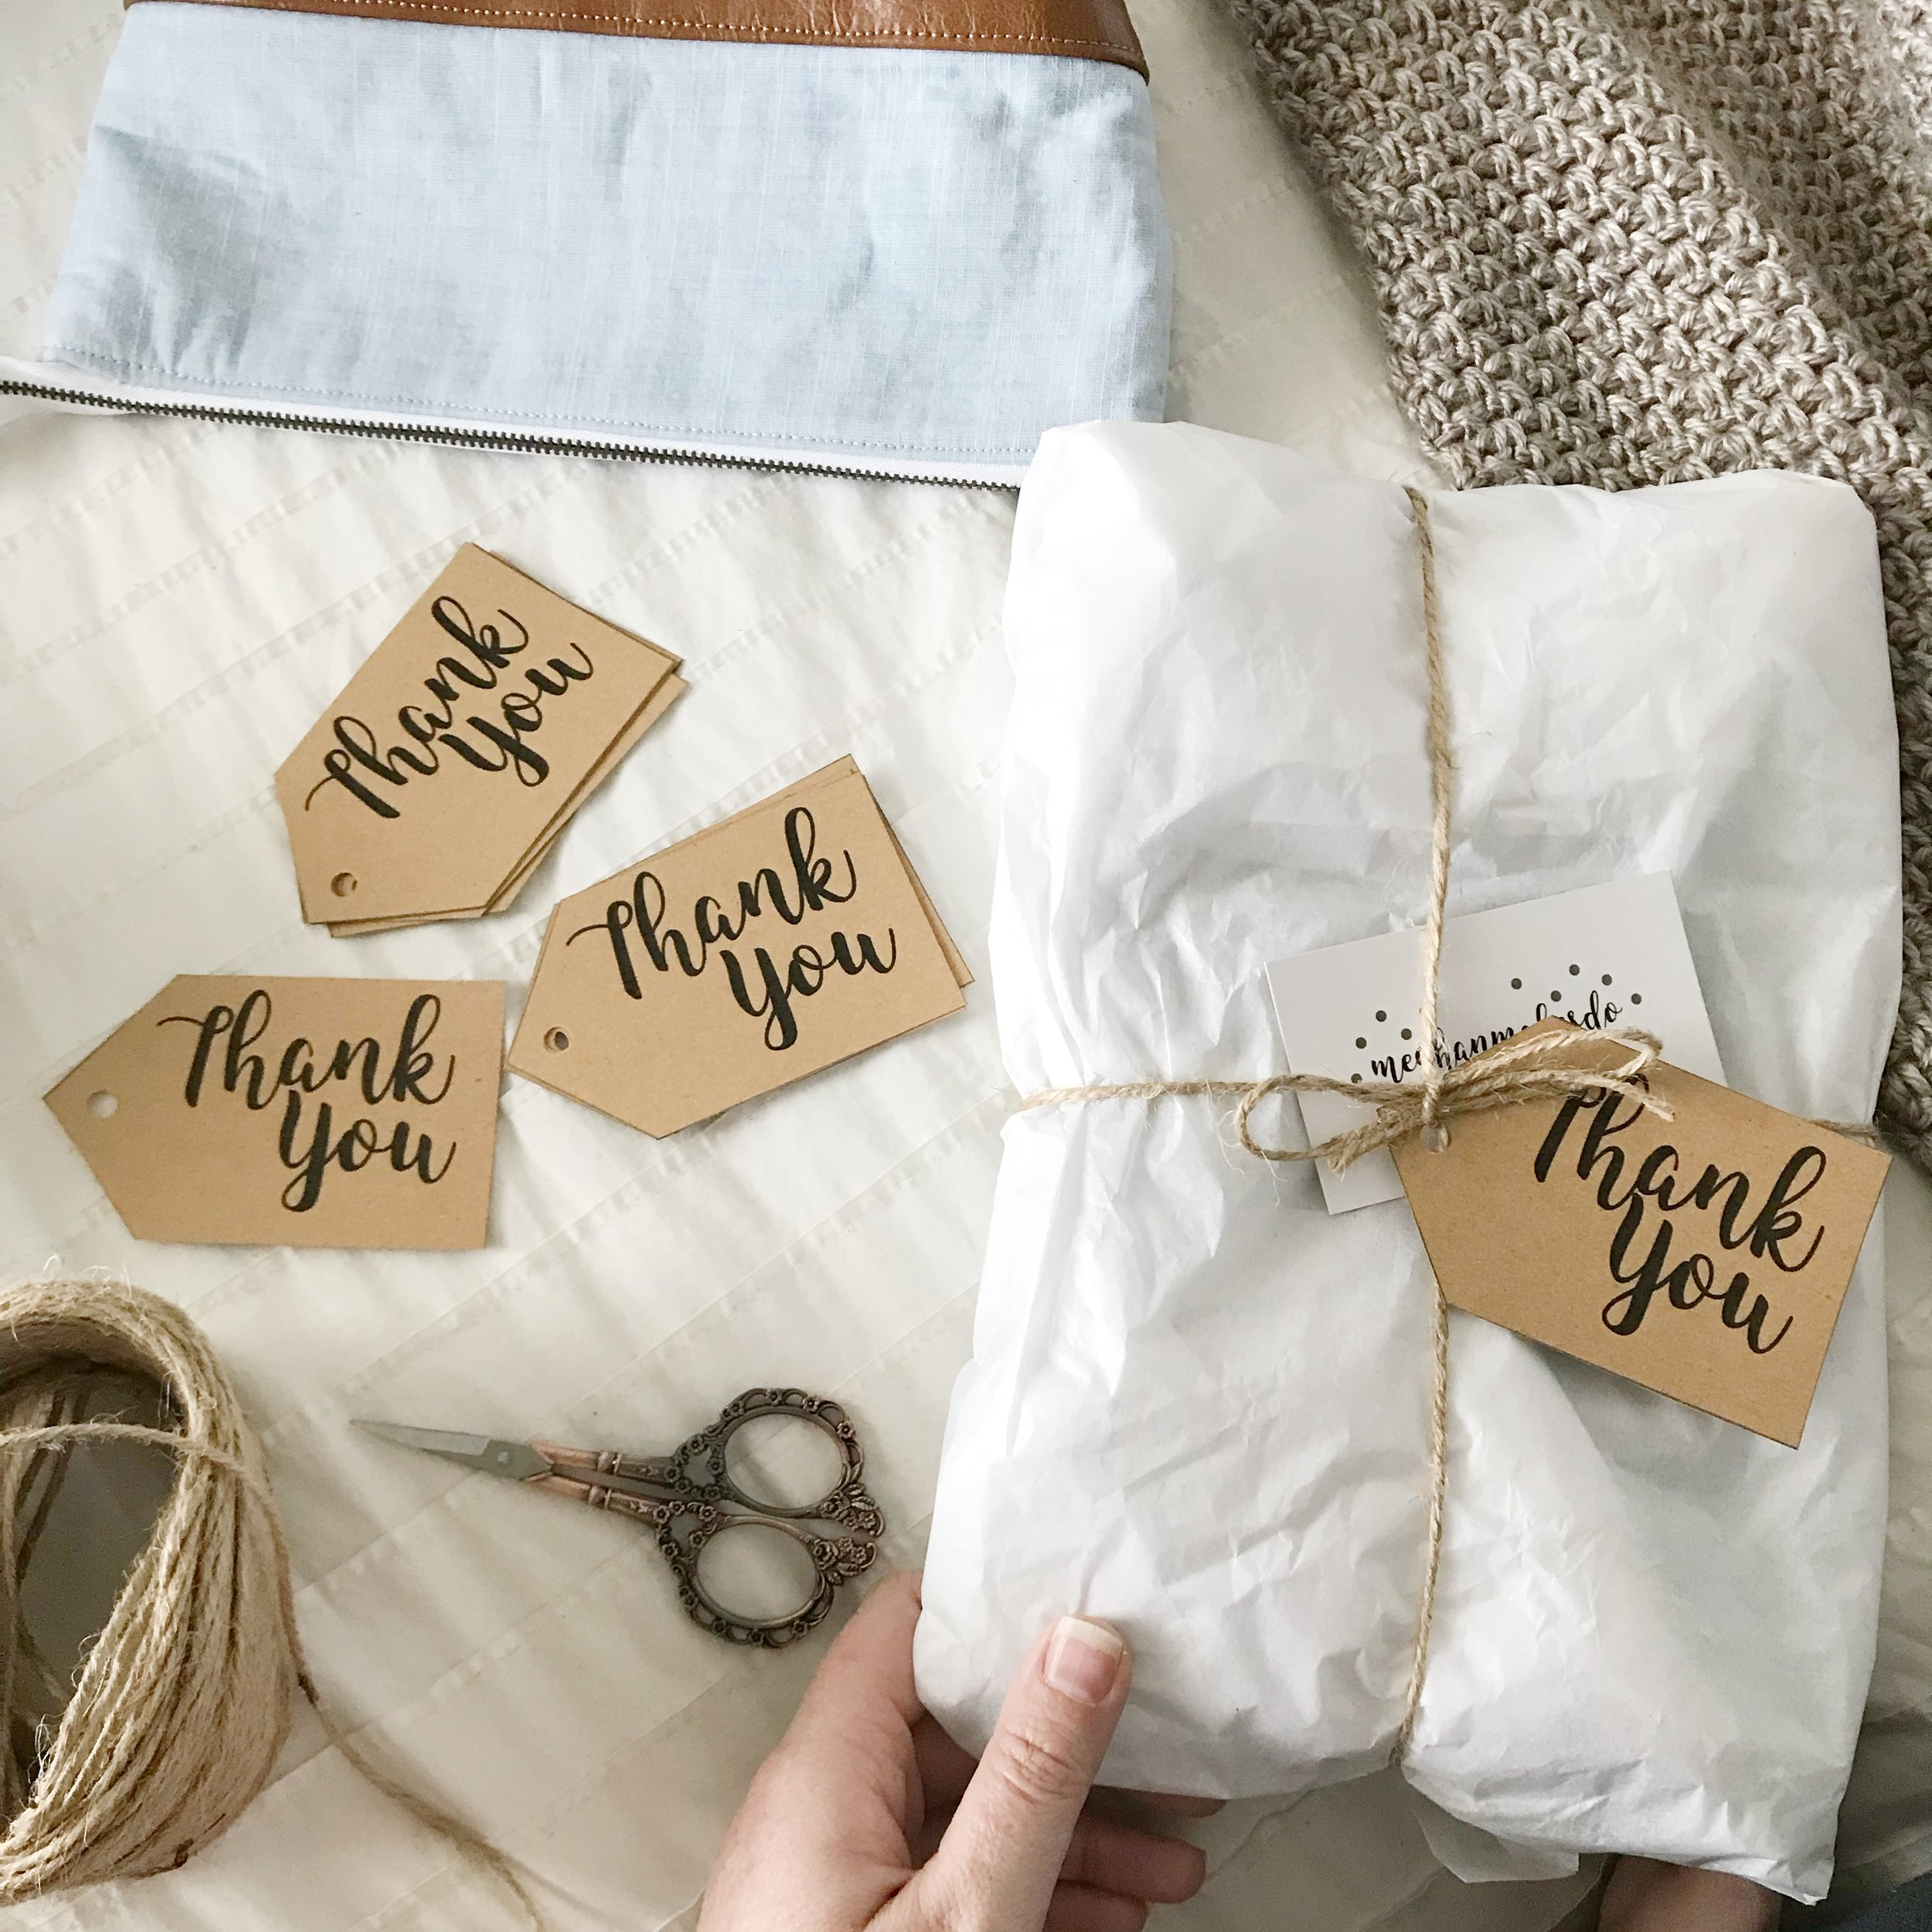 photograph relating to Thank You Printable Tag identified as Free of charge Printable Thank Yourself Tags Meghan Tends to make Do